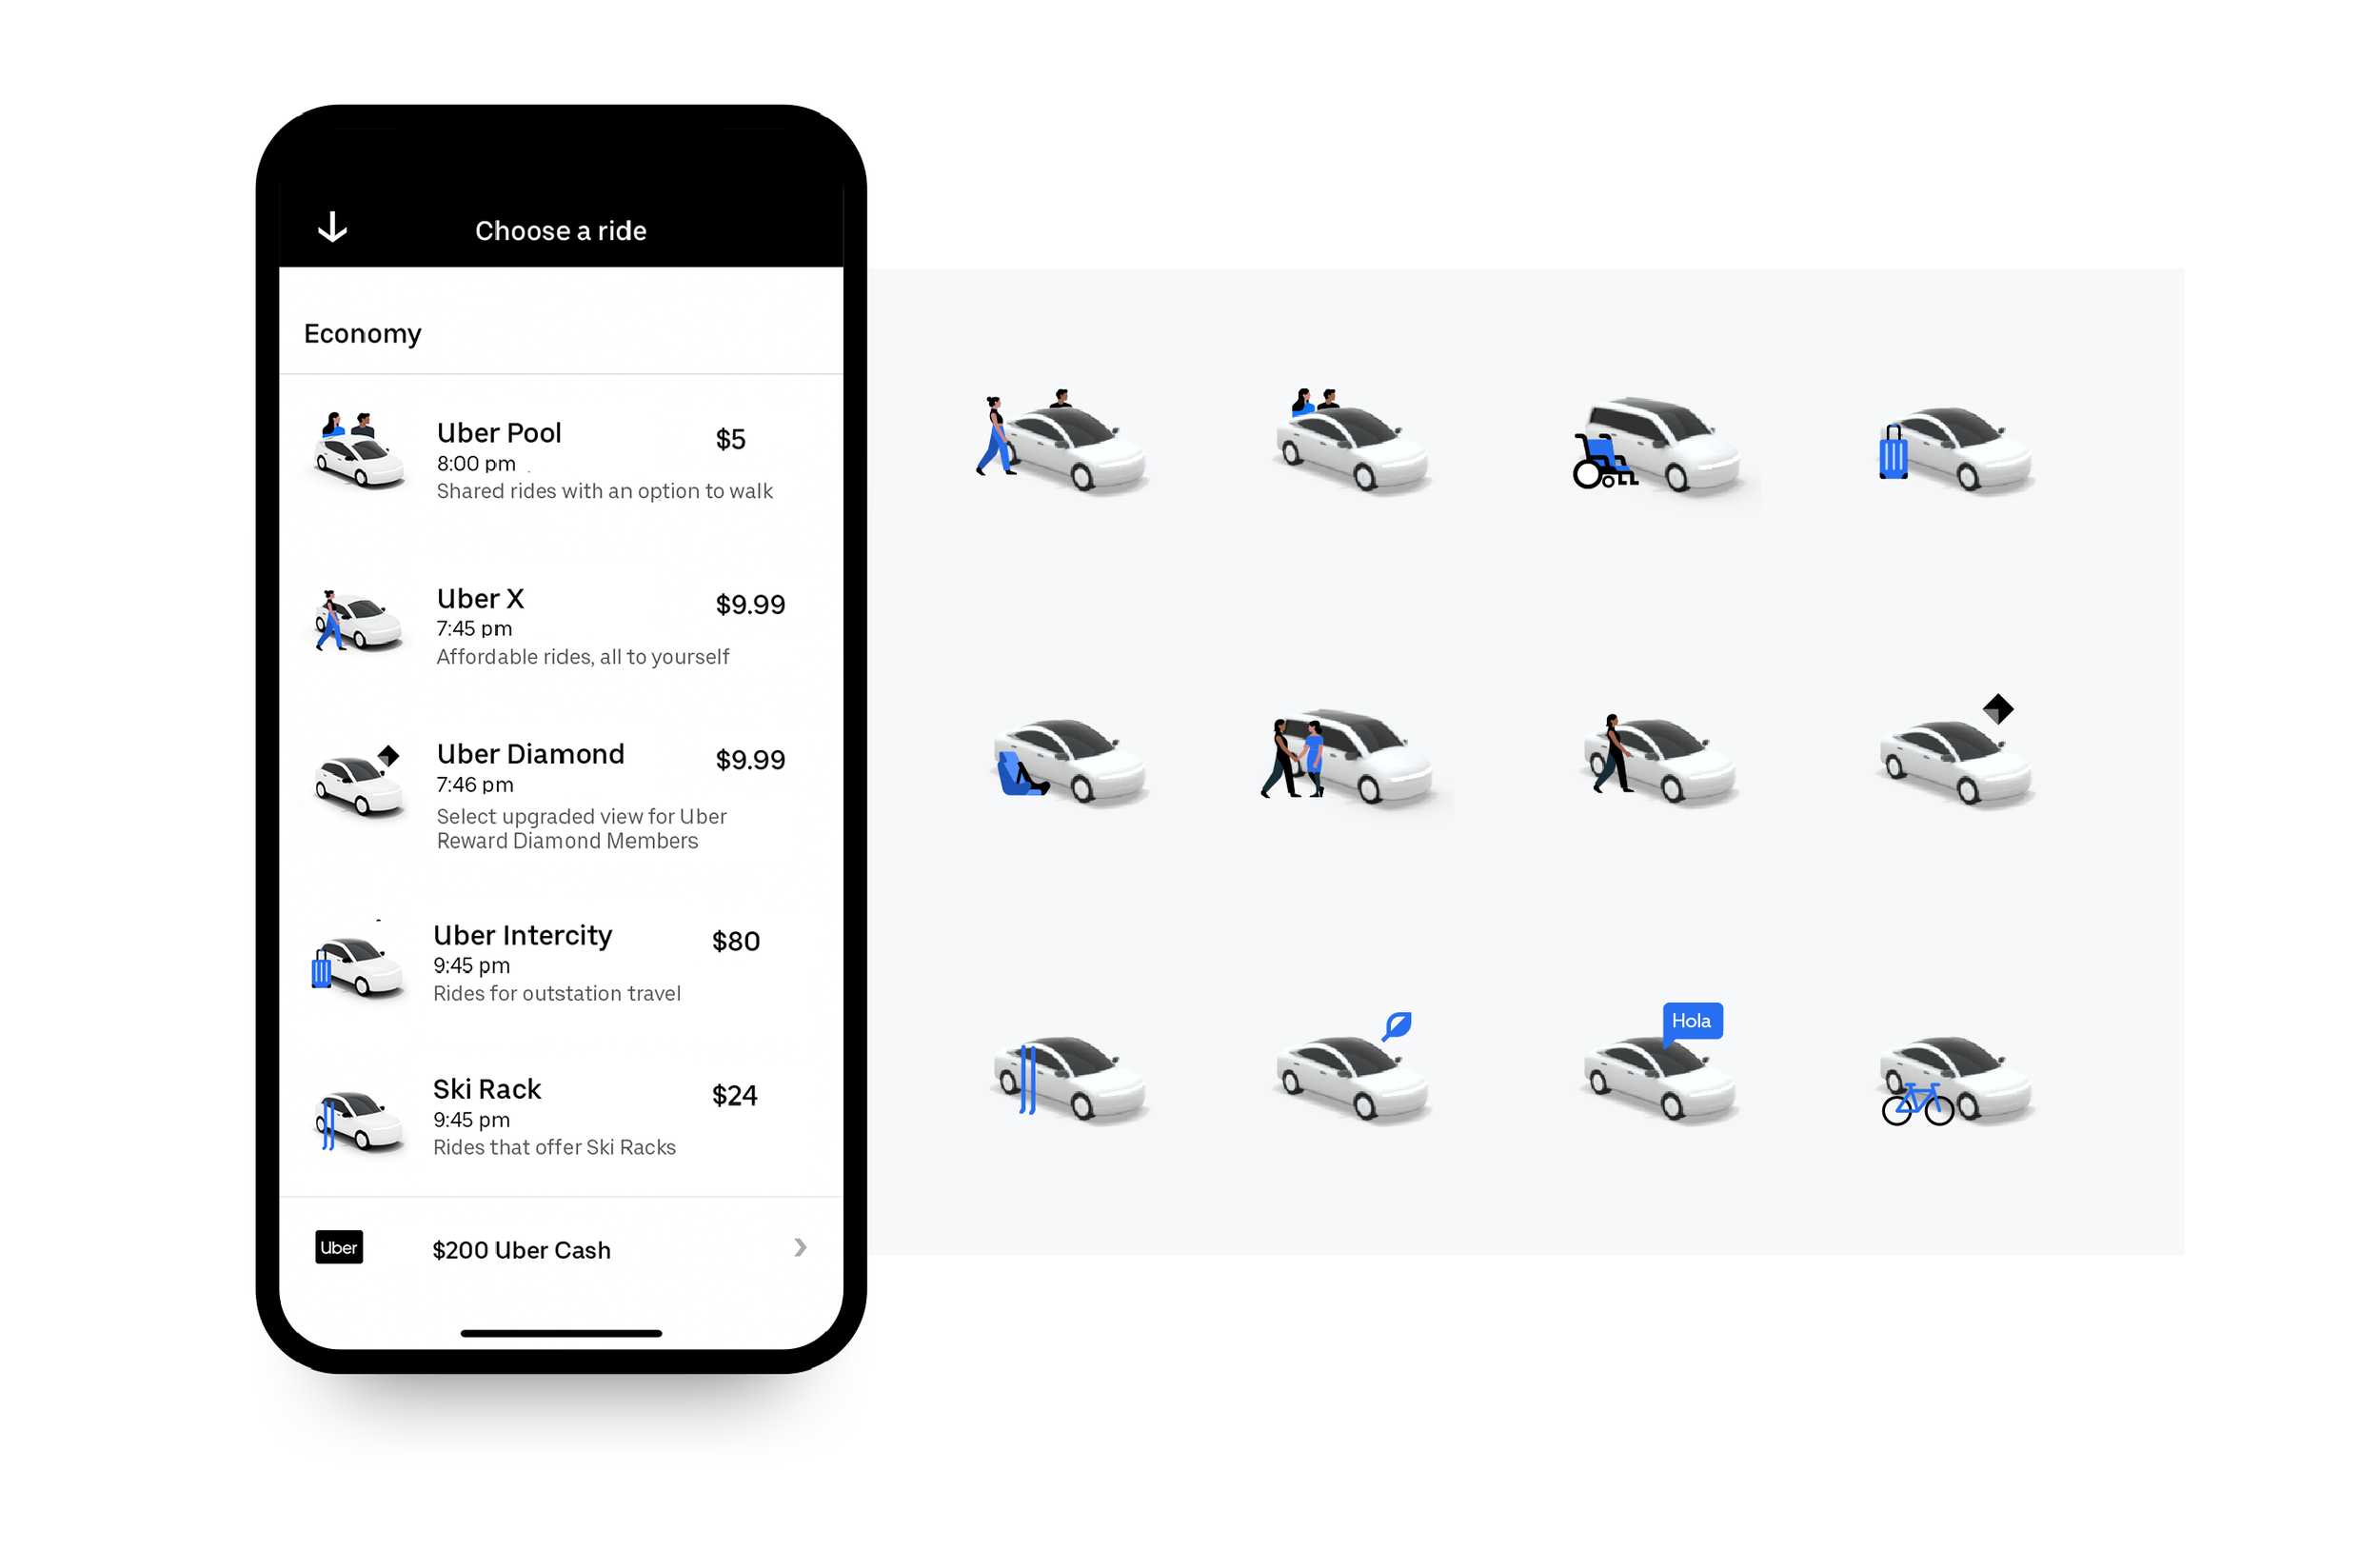 2D illustrations for the Uber App, in use globally. Done in collaboration with Alice Yang from the illustration team.